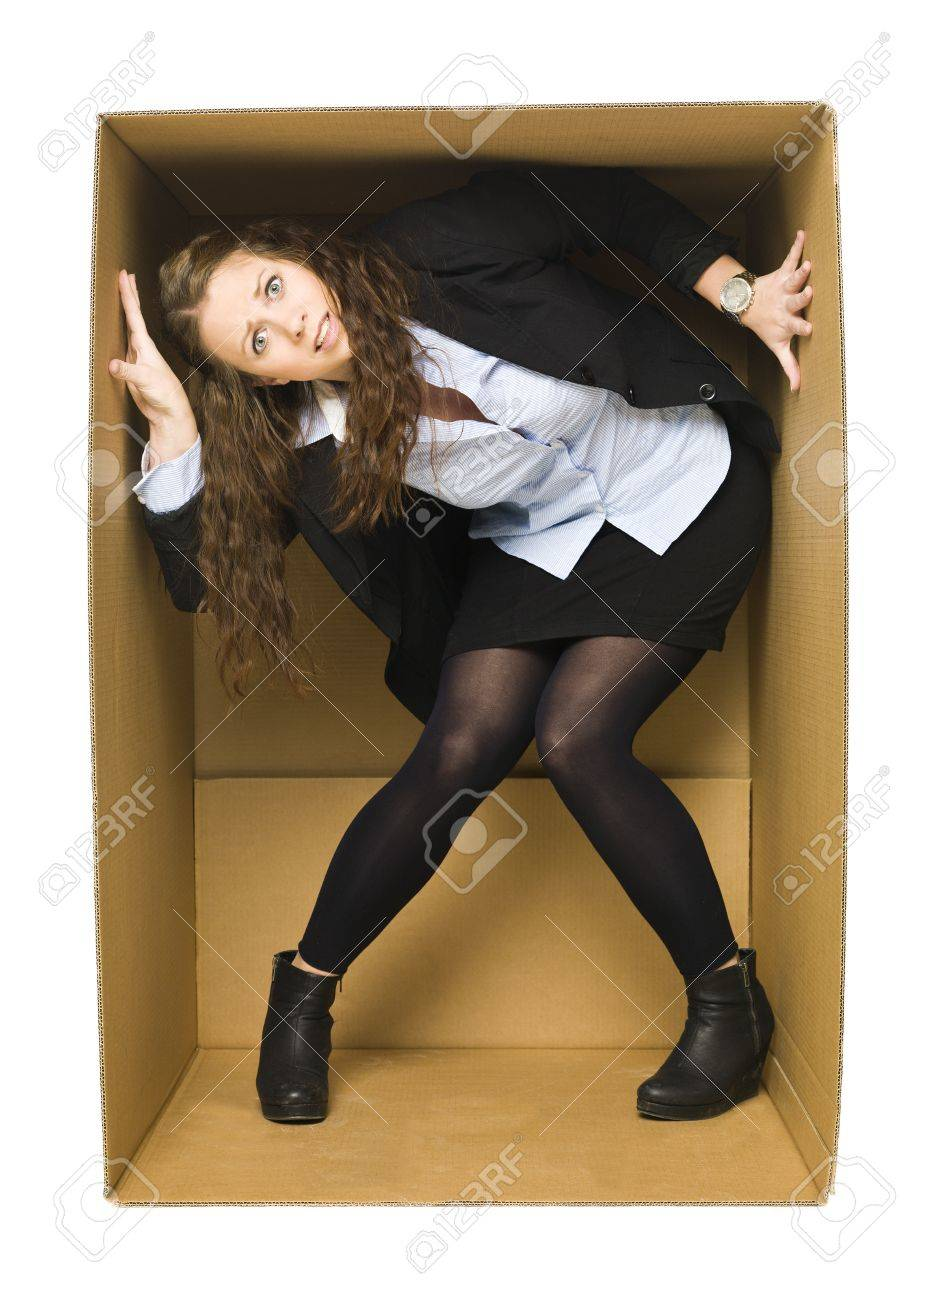 Young Woman inside of a tight Cardboard Box Stock Photo - 11741015